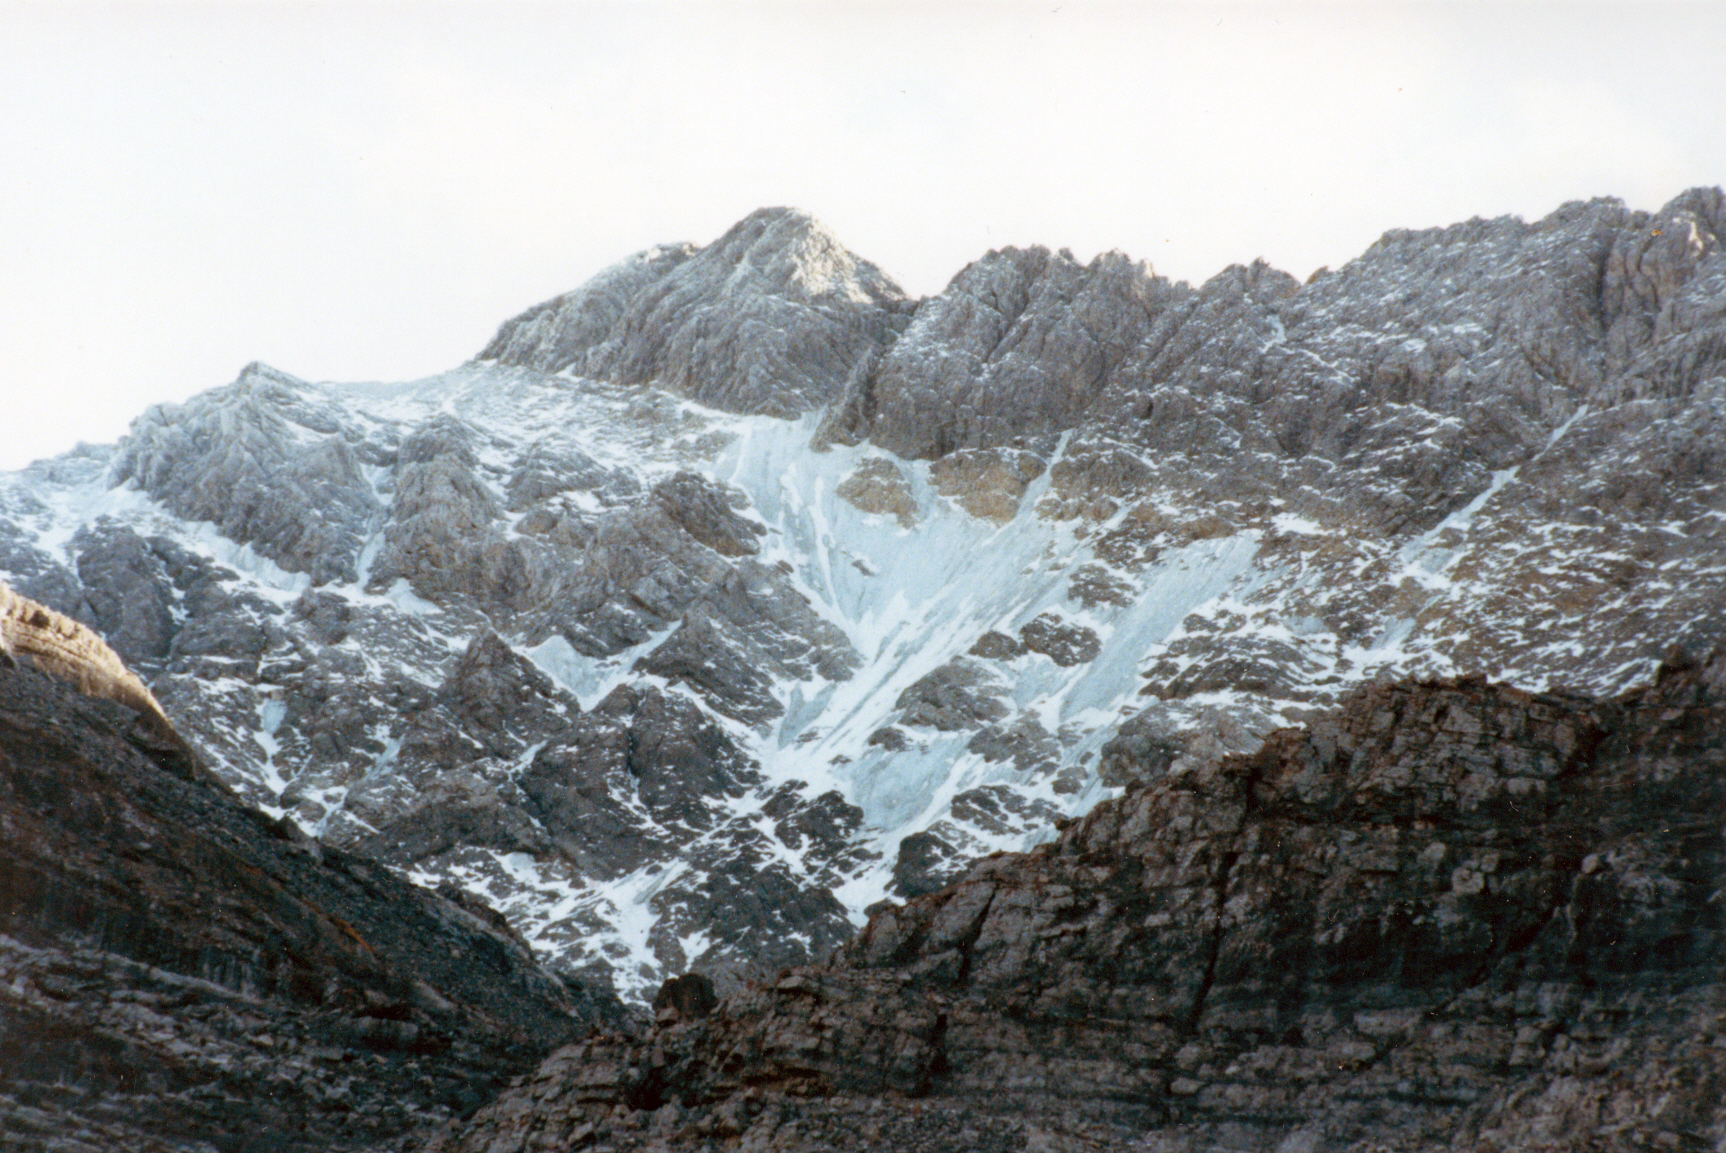 The North Face of Mt Borah Sept, 1990 – Photo by Curt Olson We were in shock when we saw this. The glacier and lower ice fields were almost gone. This was the last photo we got of the old blue ice that was estimated to be over 500 years old or more.